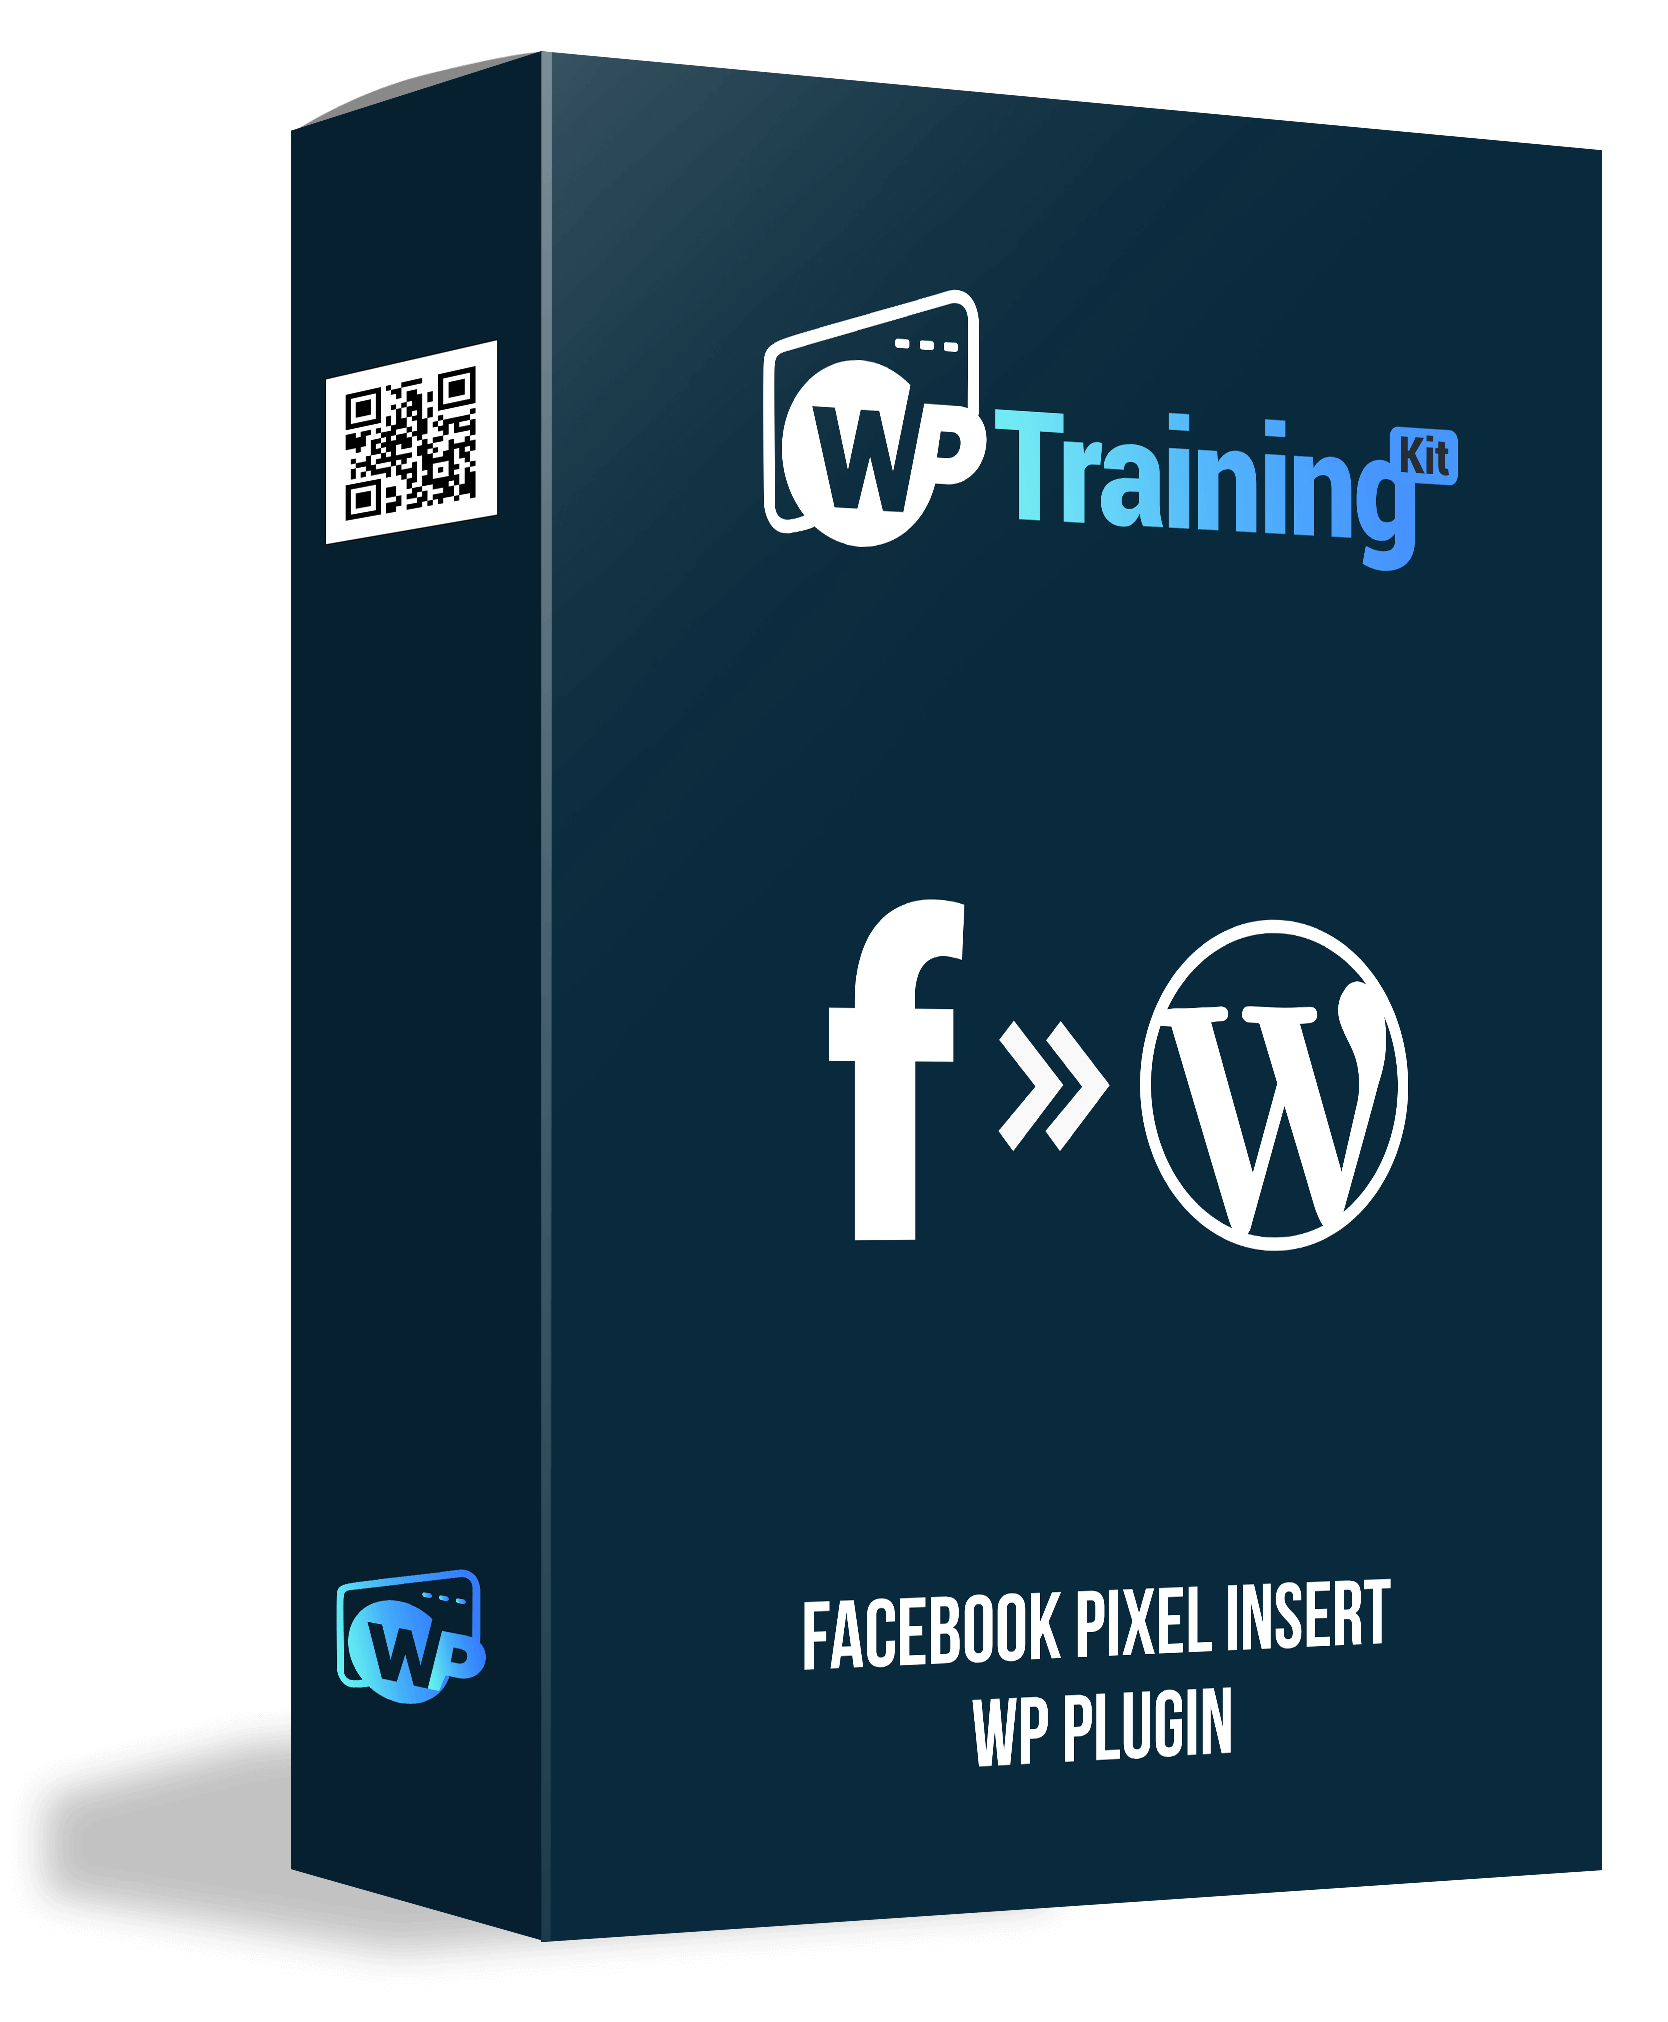 Bonus 7. Facebook Pixel Insert WP Plugin Box Design